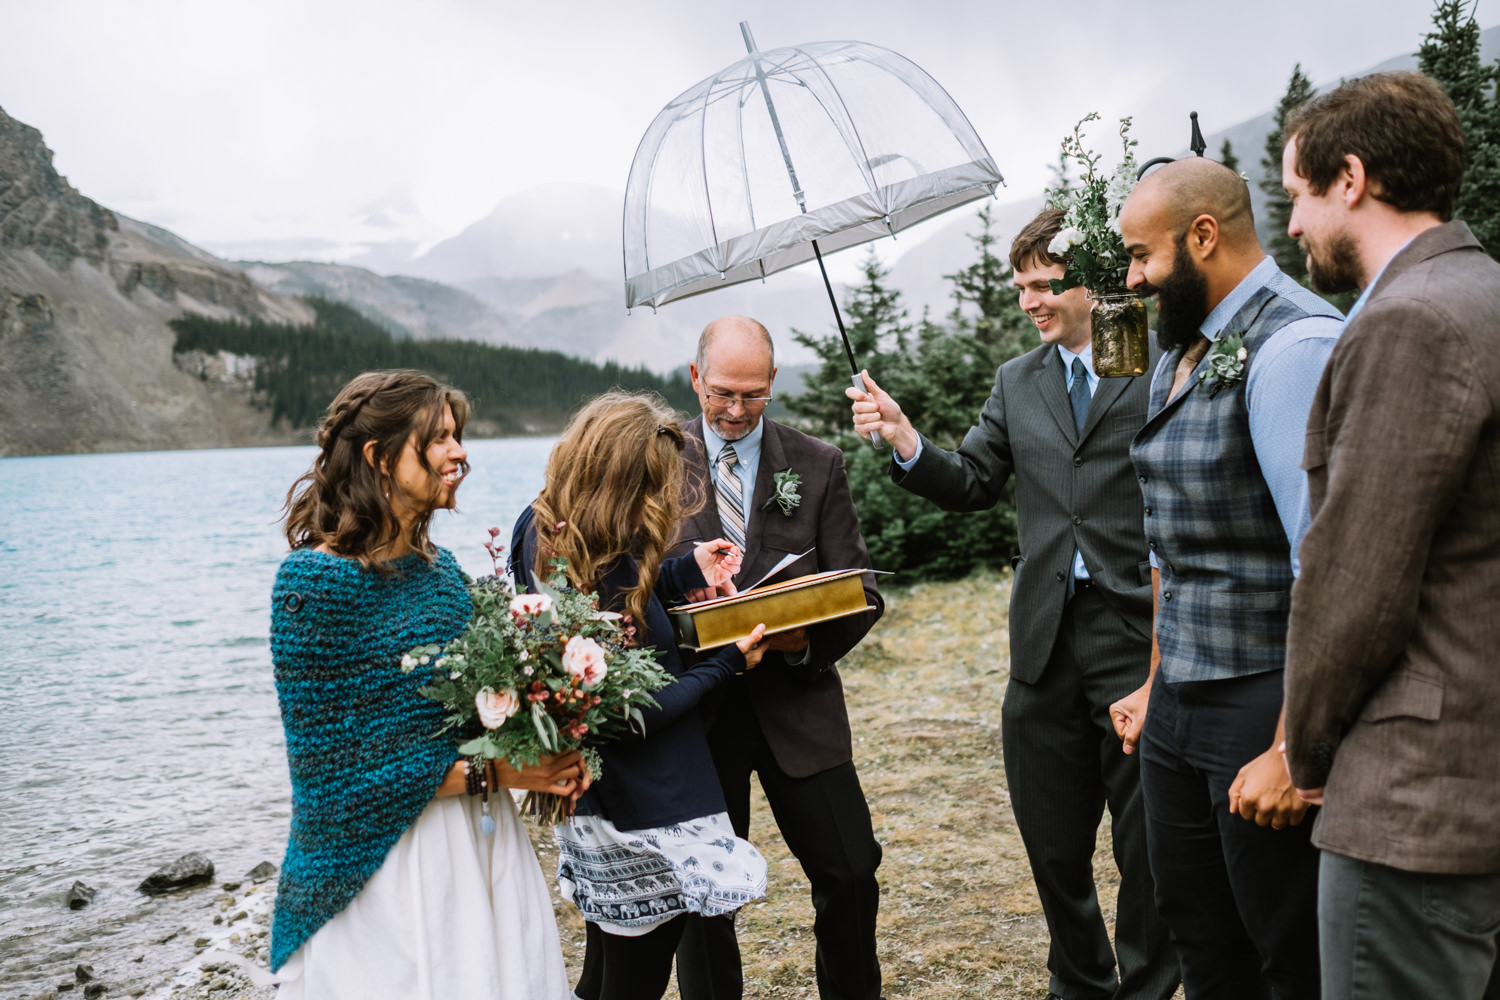 banff-wedding-photographer-packages-10037